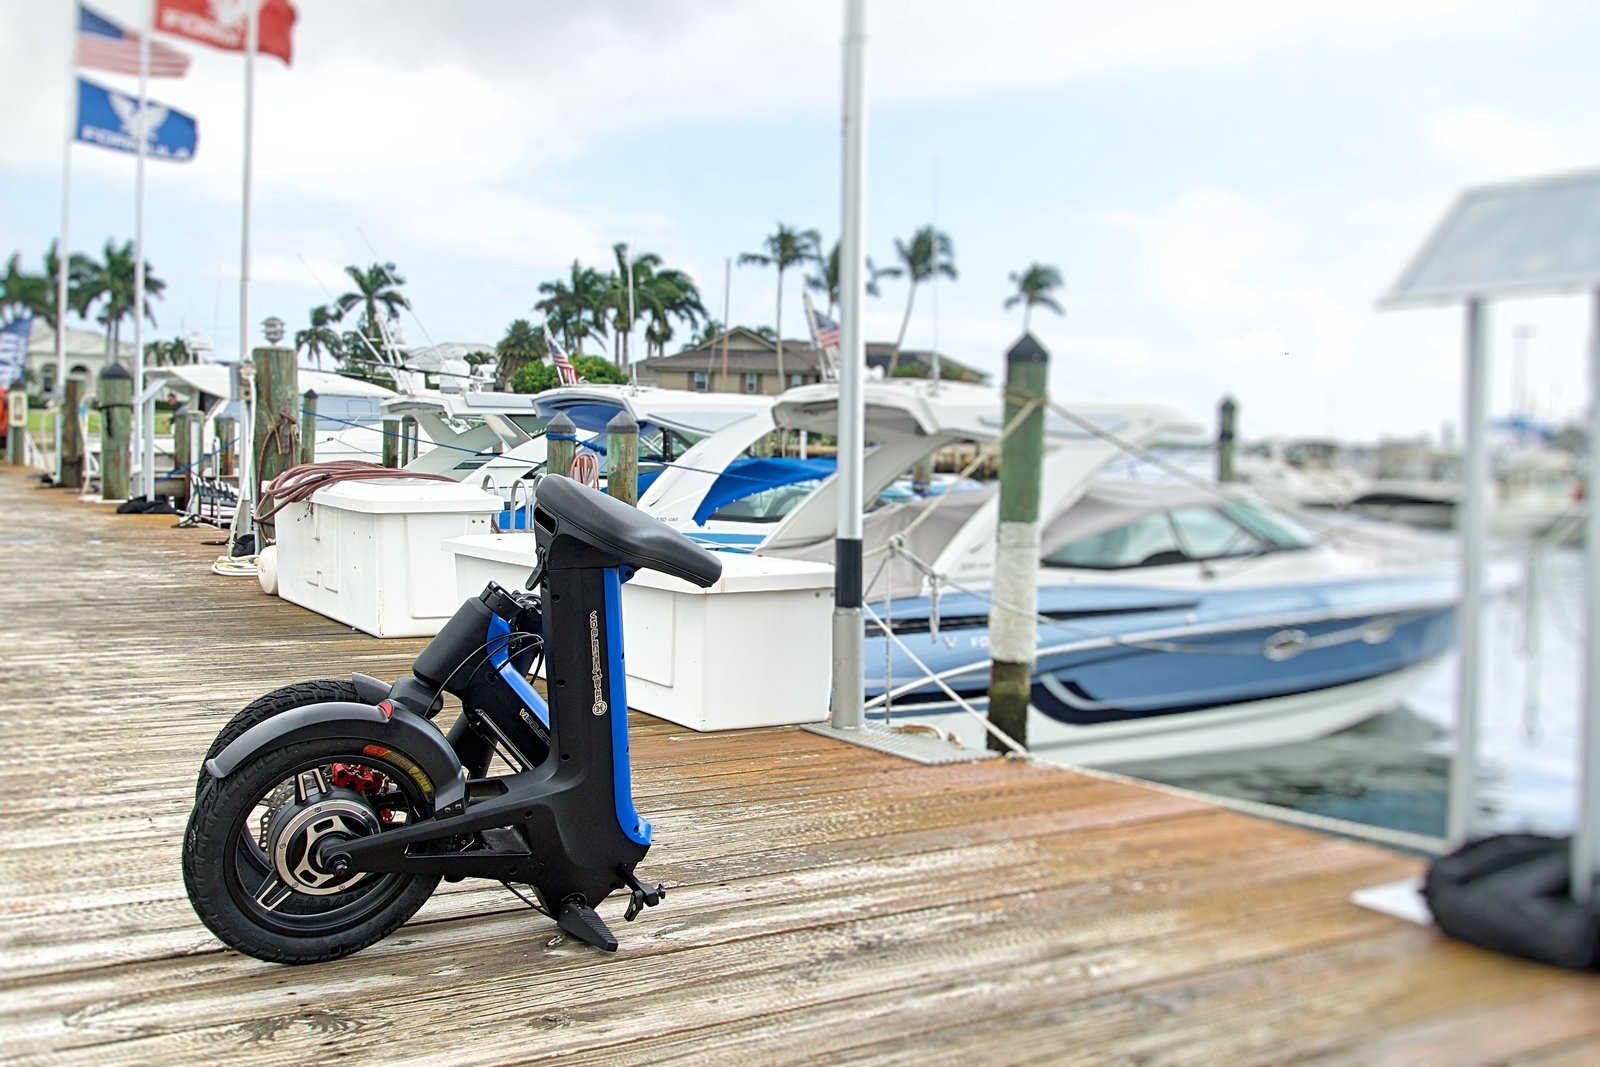 Blue Folded Go-Bike M3 with boat in background